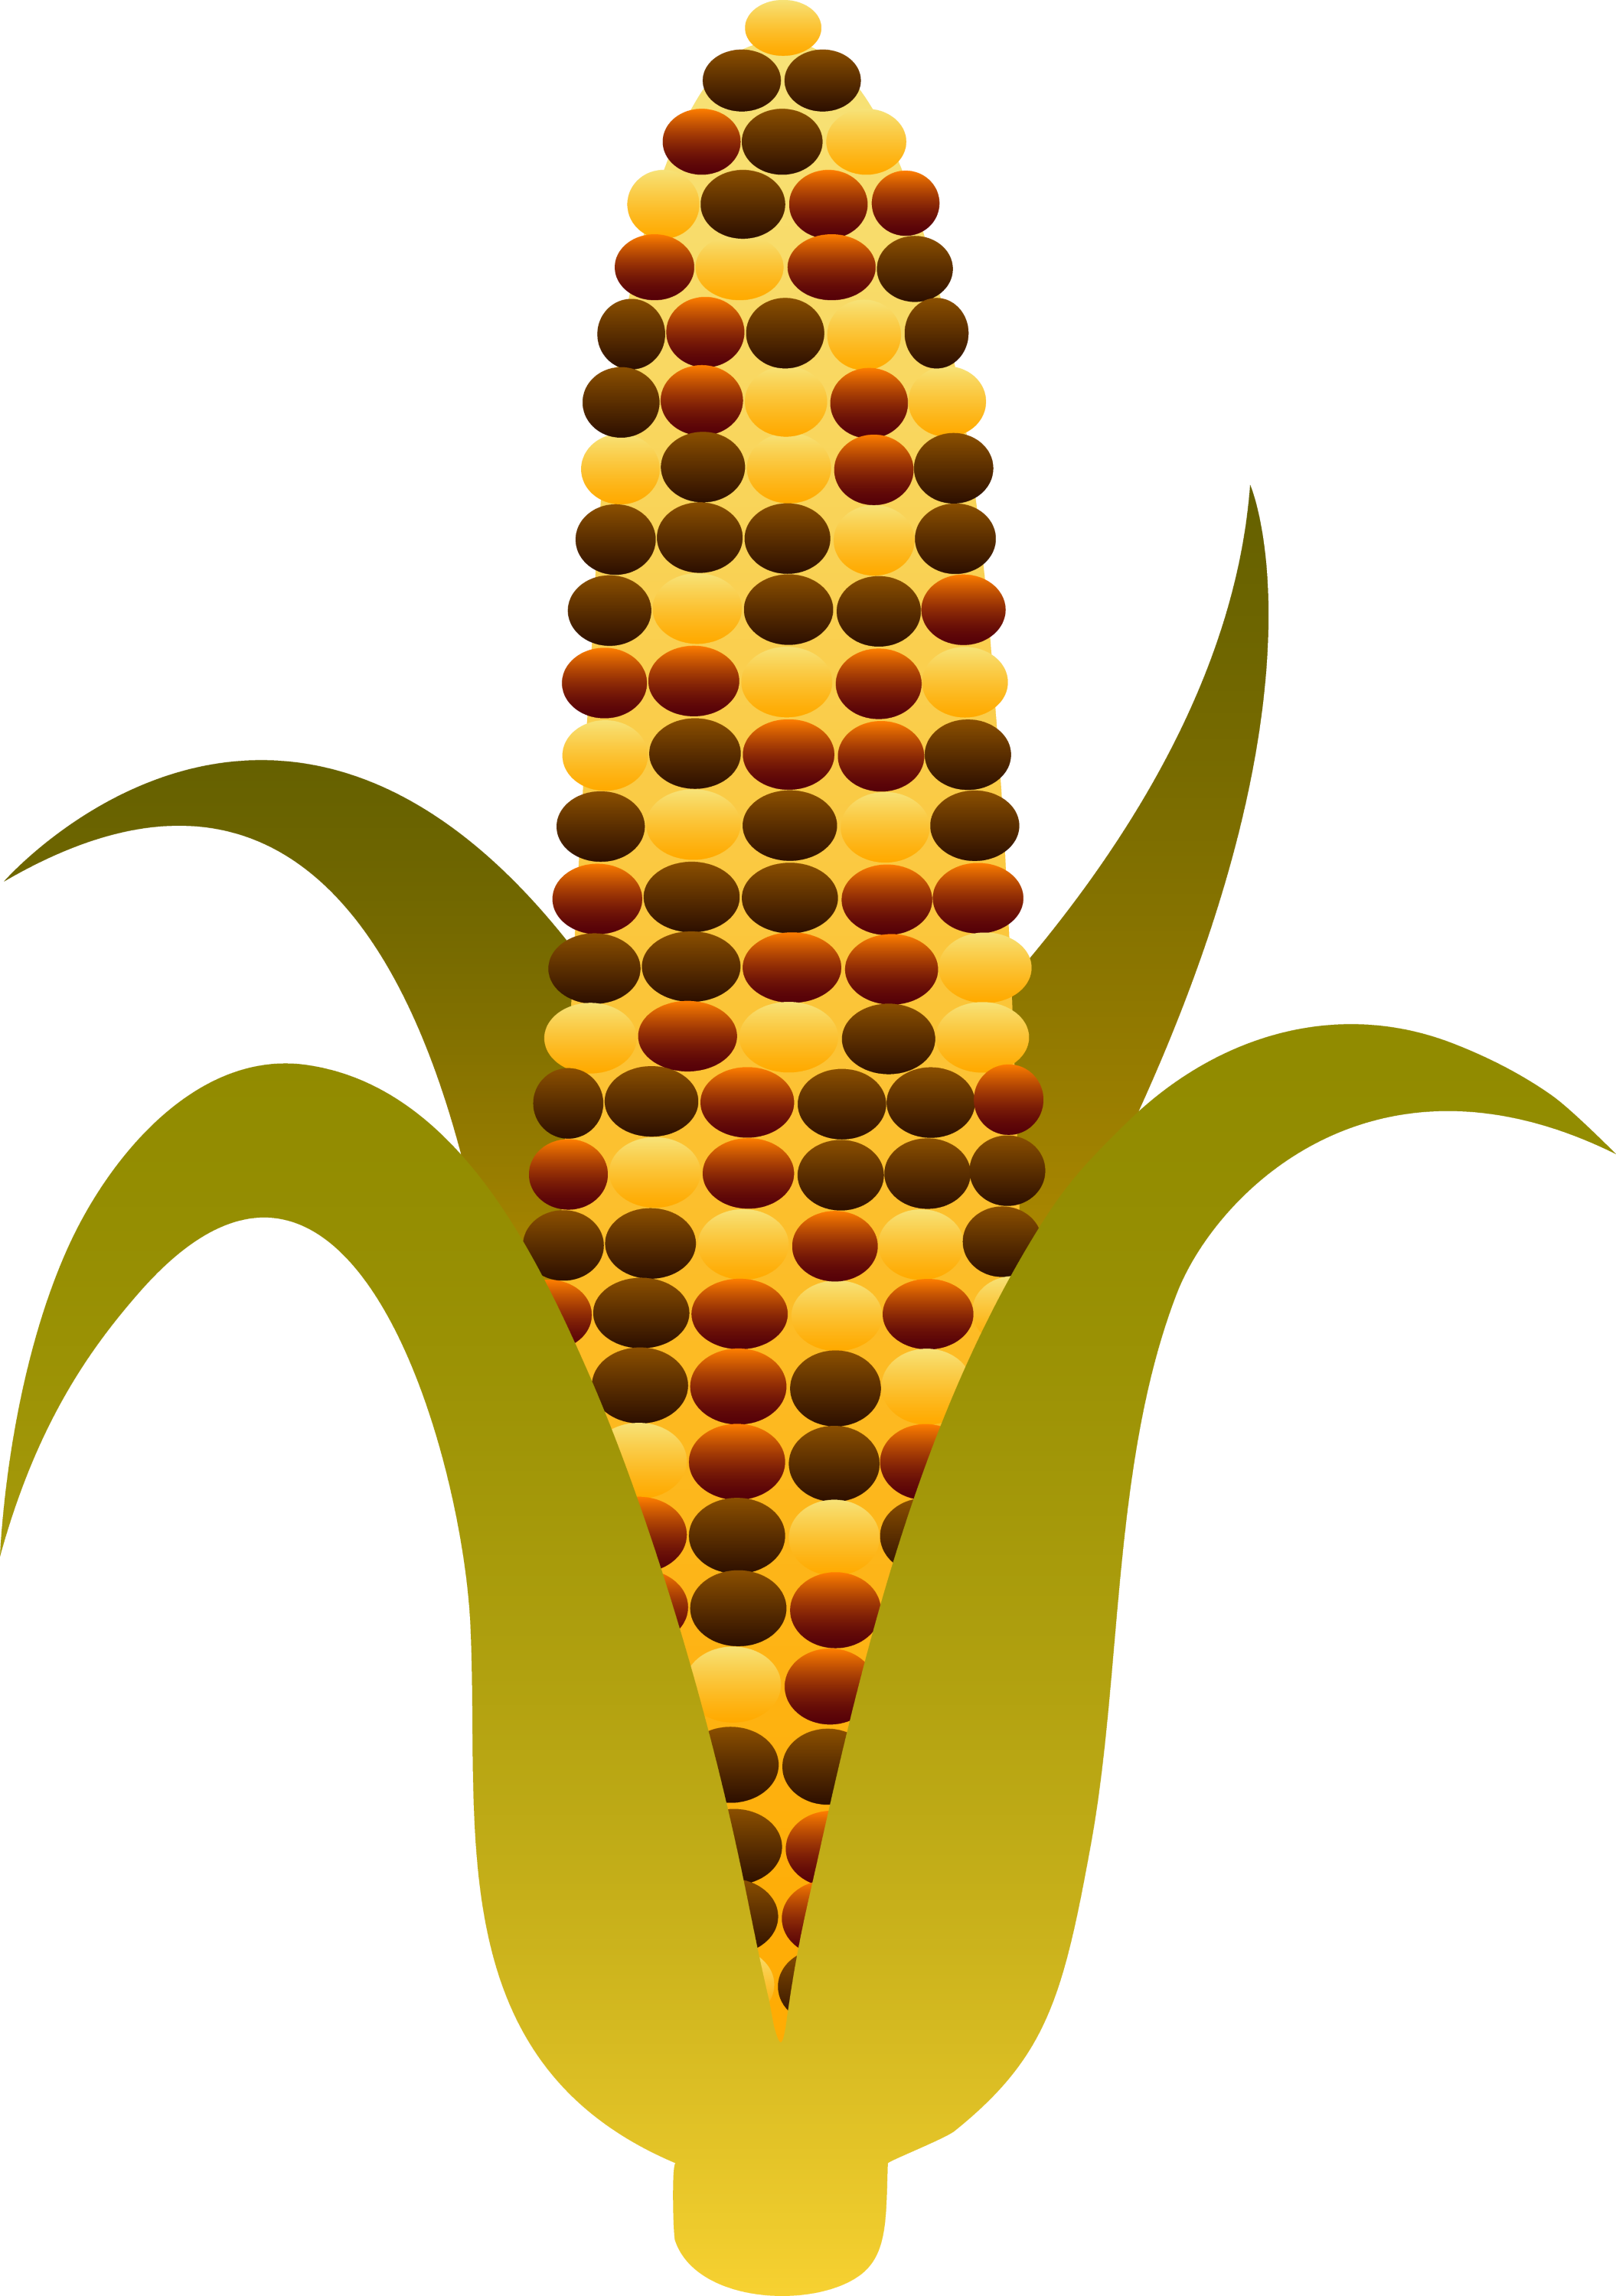 indian harvest corn maize free clip art rh sweetclipart com Candy Corn Corn Stalk Clip Art